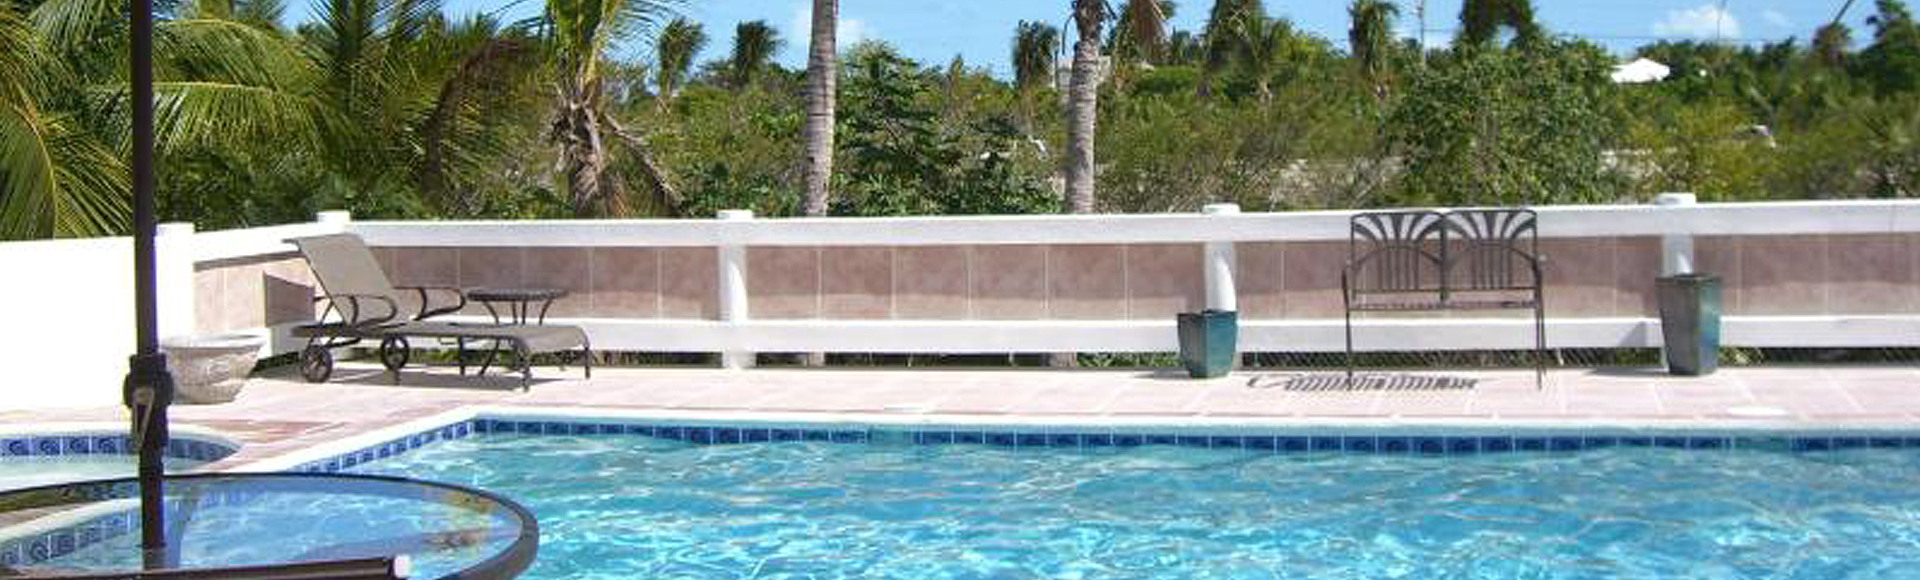 Backyard pool at Provo Villa on Turks and Caicos Islands